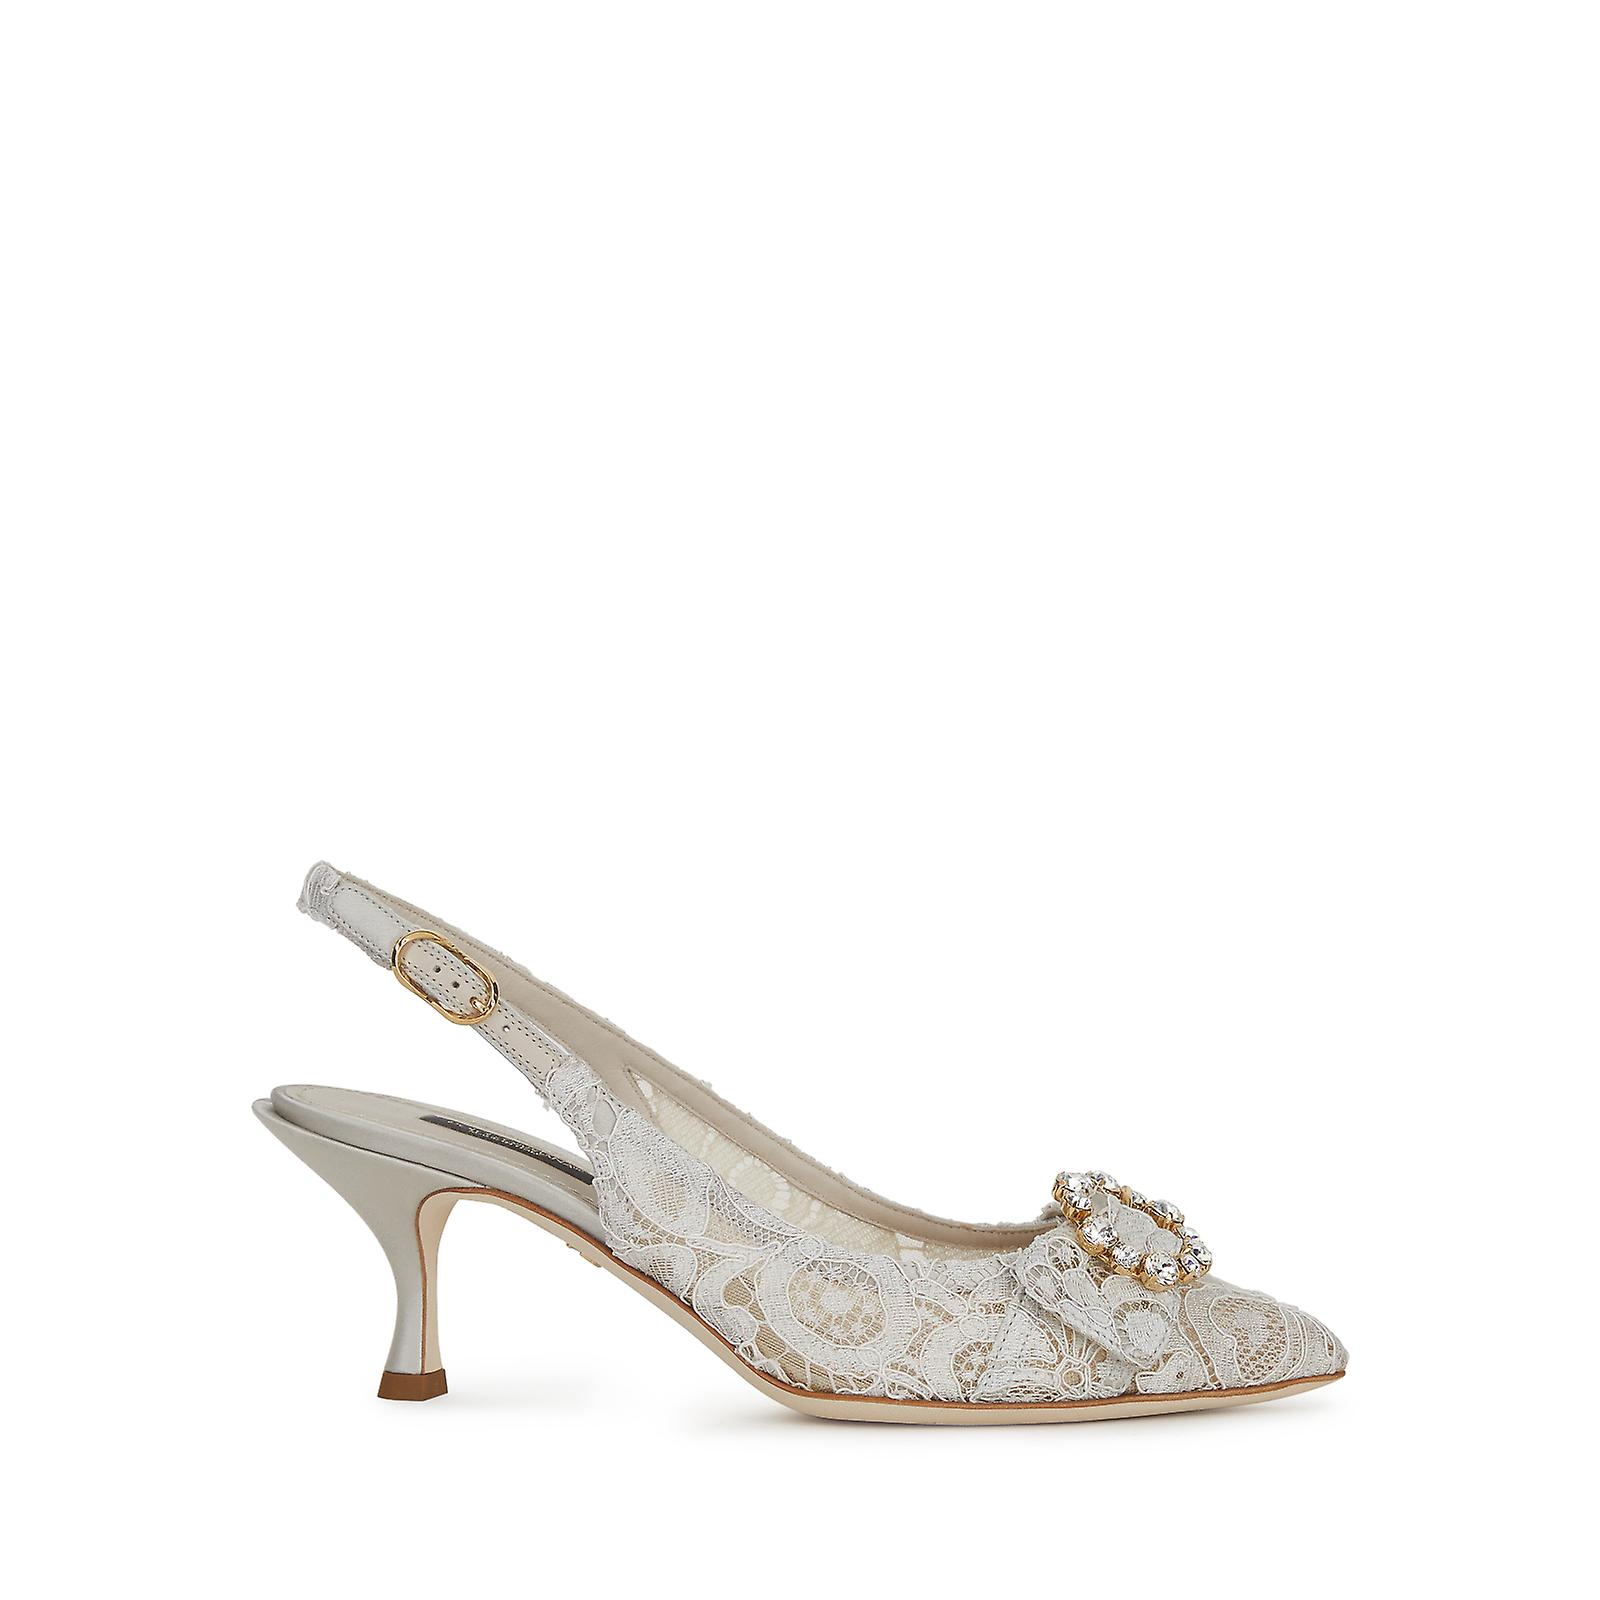 Dolce & Gabbana Pointed Slingback In Openwork Lace And Satin scq7E